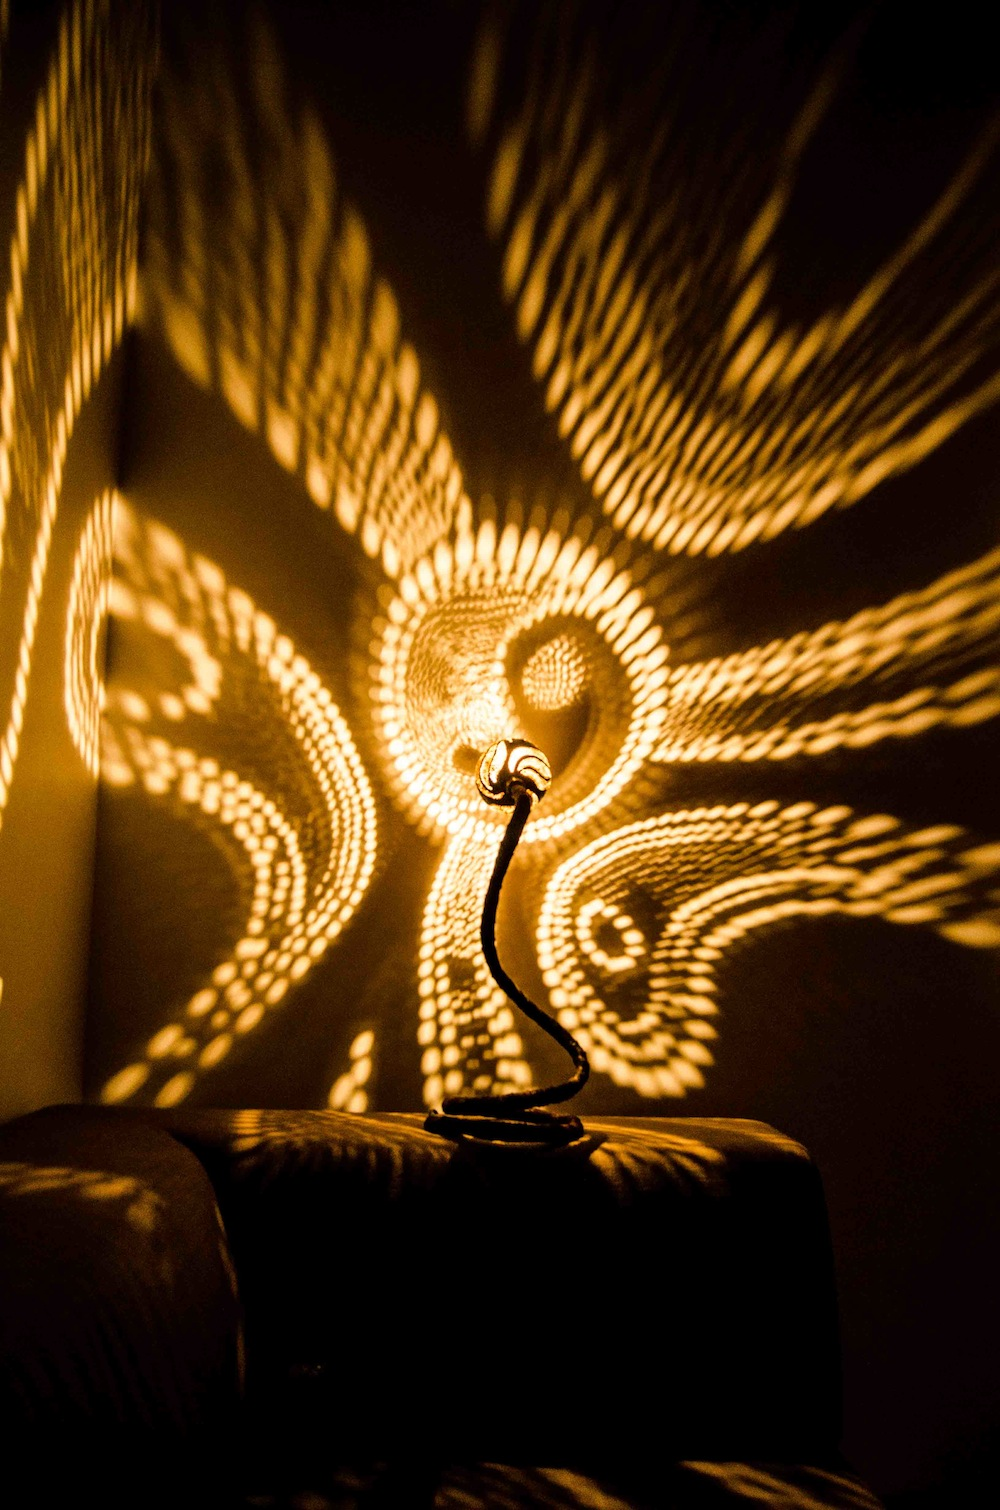 Serpentine Lamps Drilled From Coconut Shells Cast Dazzling